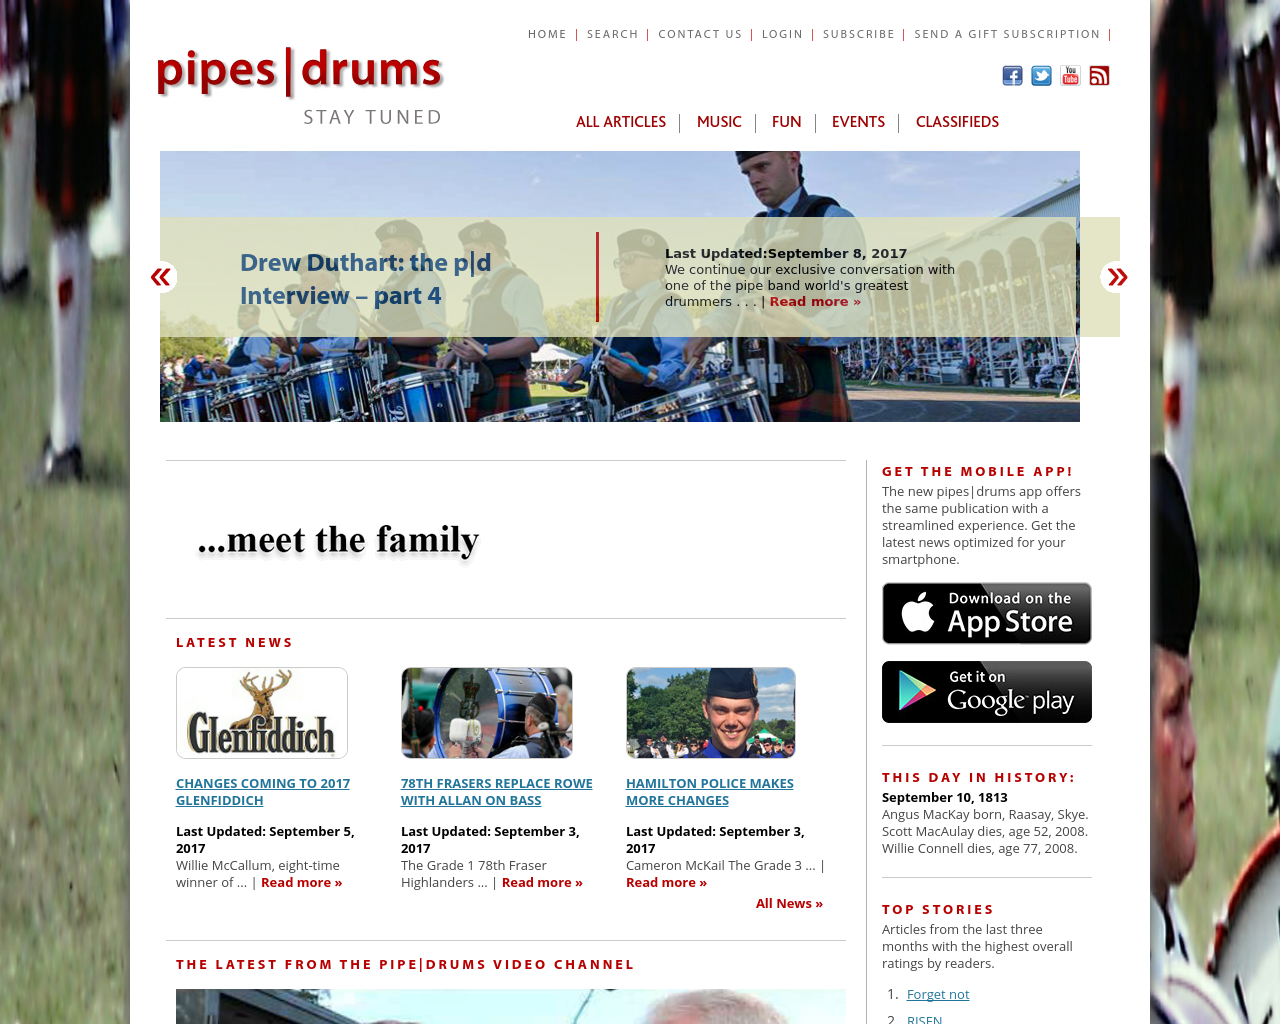 Pipesdrums-Advertising-Reviews-Pricing